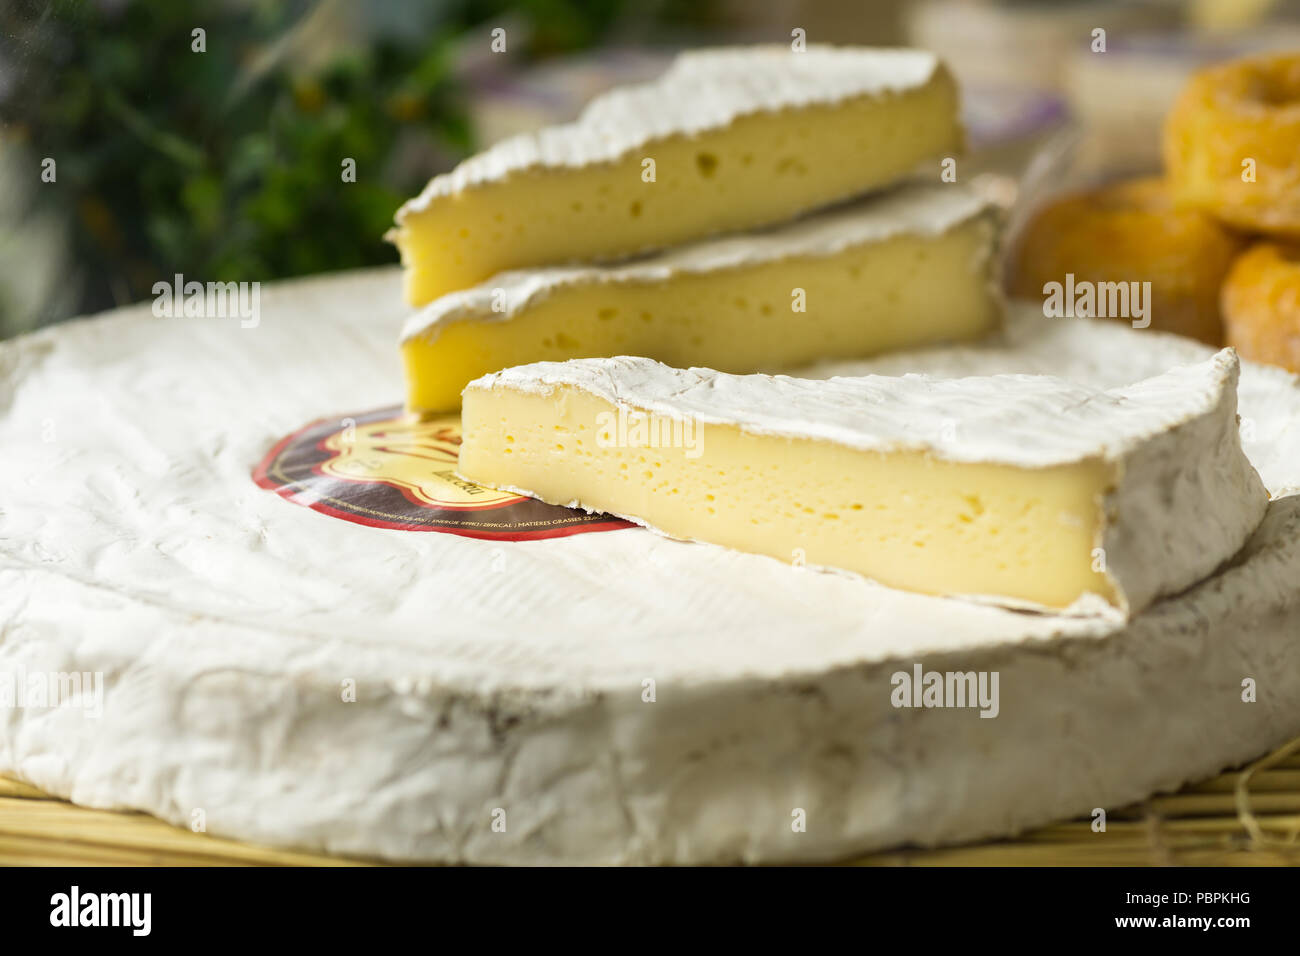 Close up of cut brie cheese sold on a Paris market, France. - Stock Image